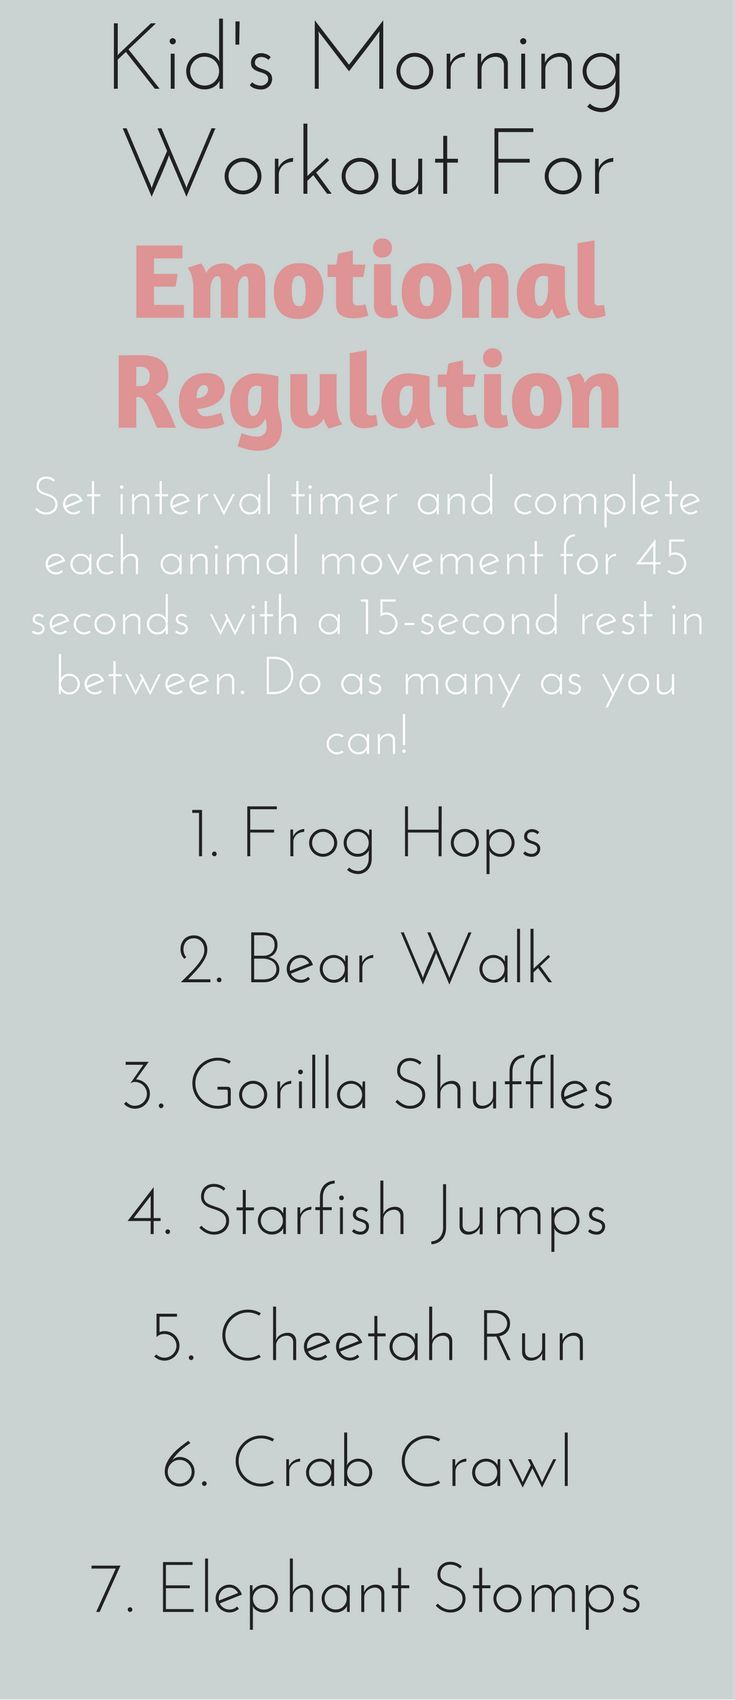 Improve your kid's emotional regulation in just 7 minutes a day with these animal-themed exercises